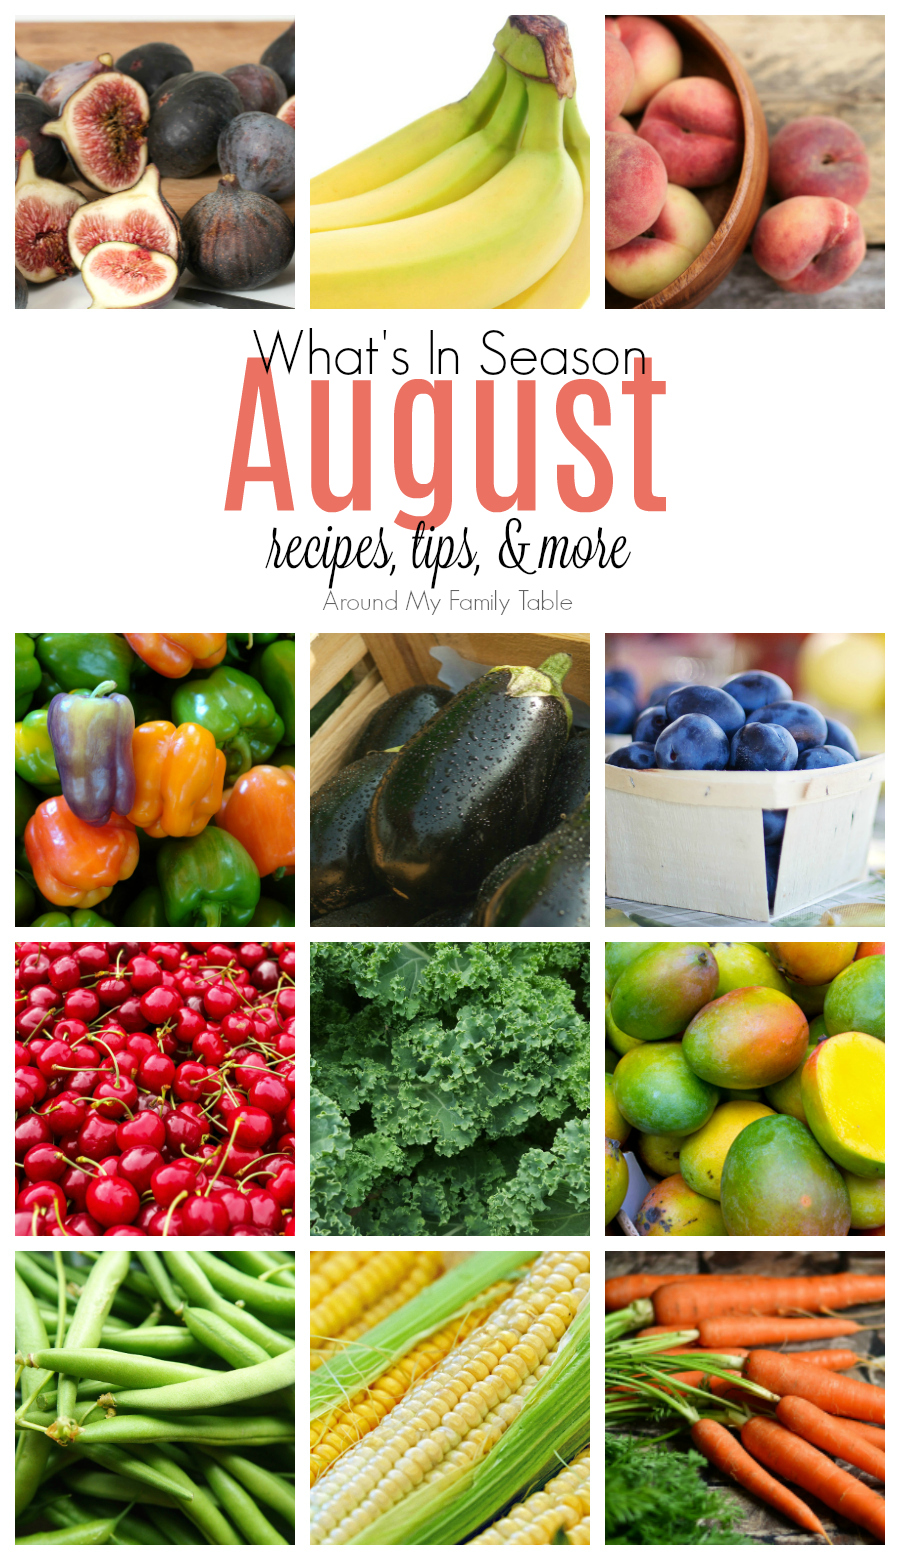 August has a great mixture everything: berries, stone fruit, with a few vegetables thrown in too. Find out all about August Seasonal Produce in this August -- What's In Season Guide. #augustproduce #eatseasonally